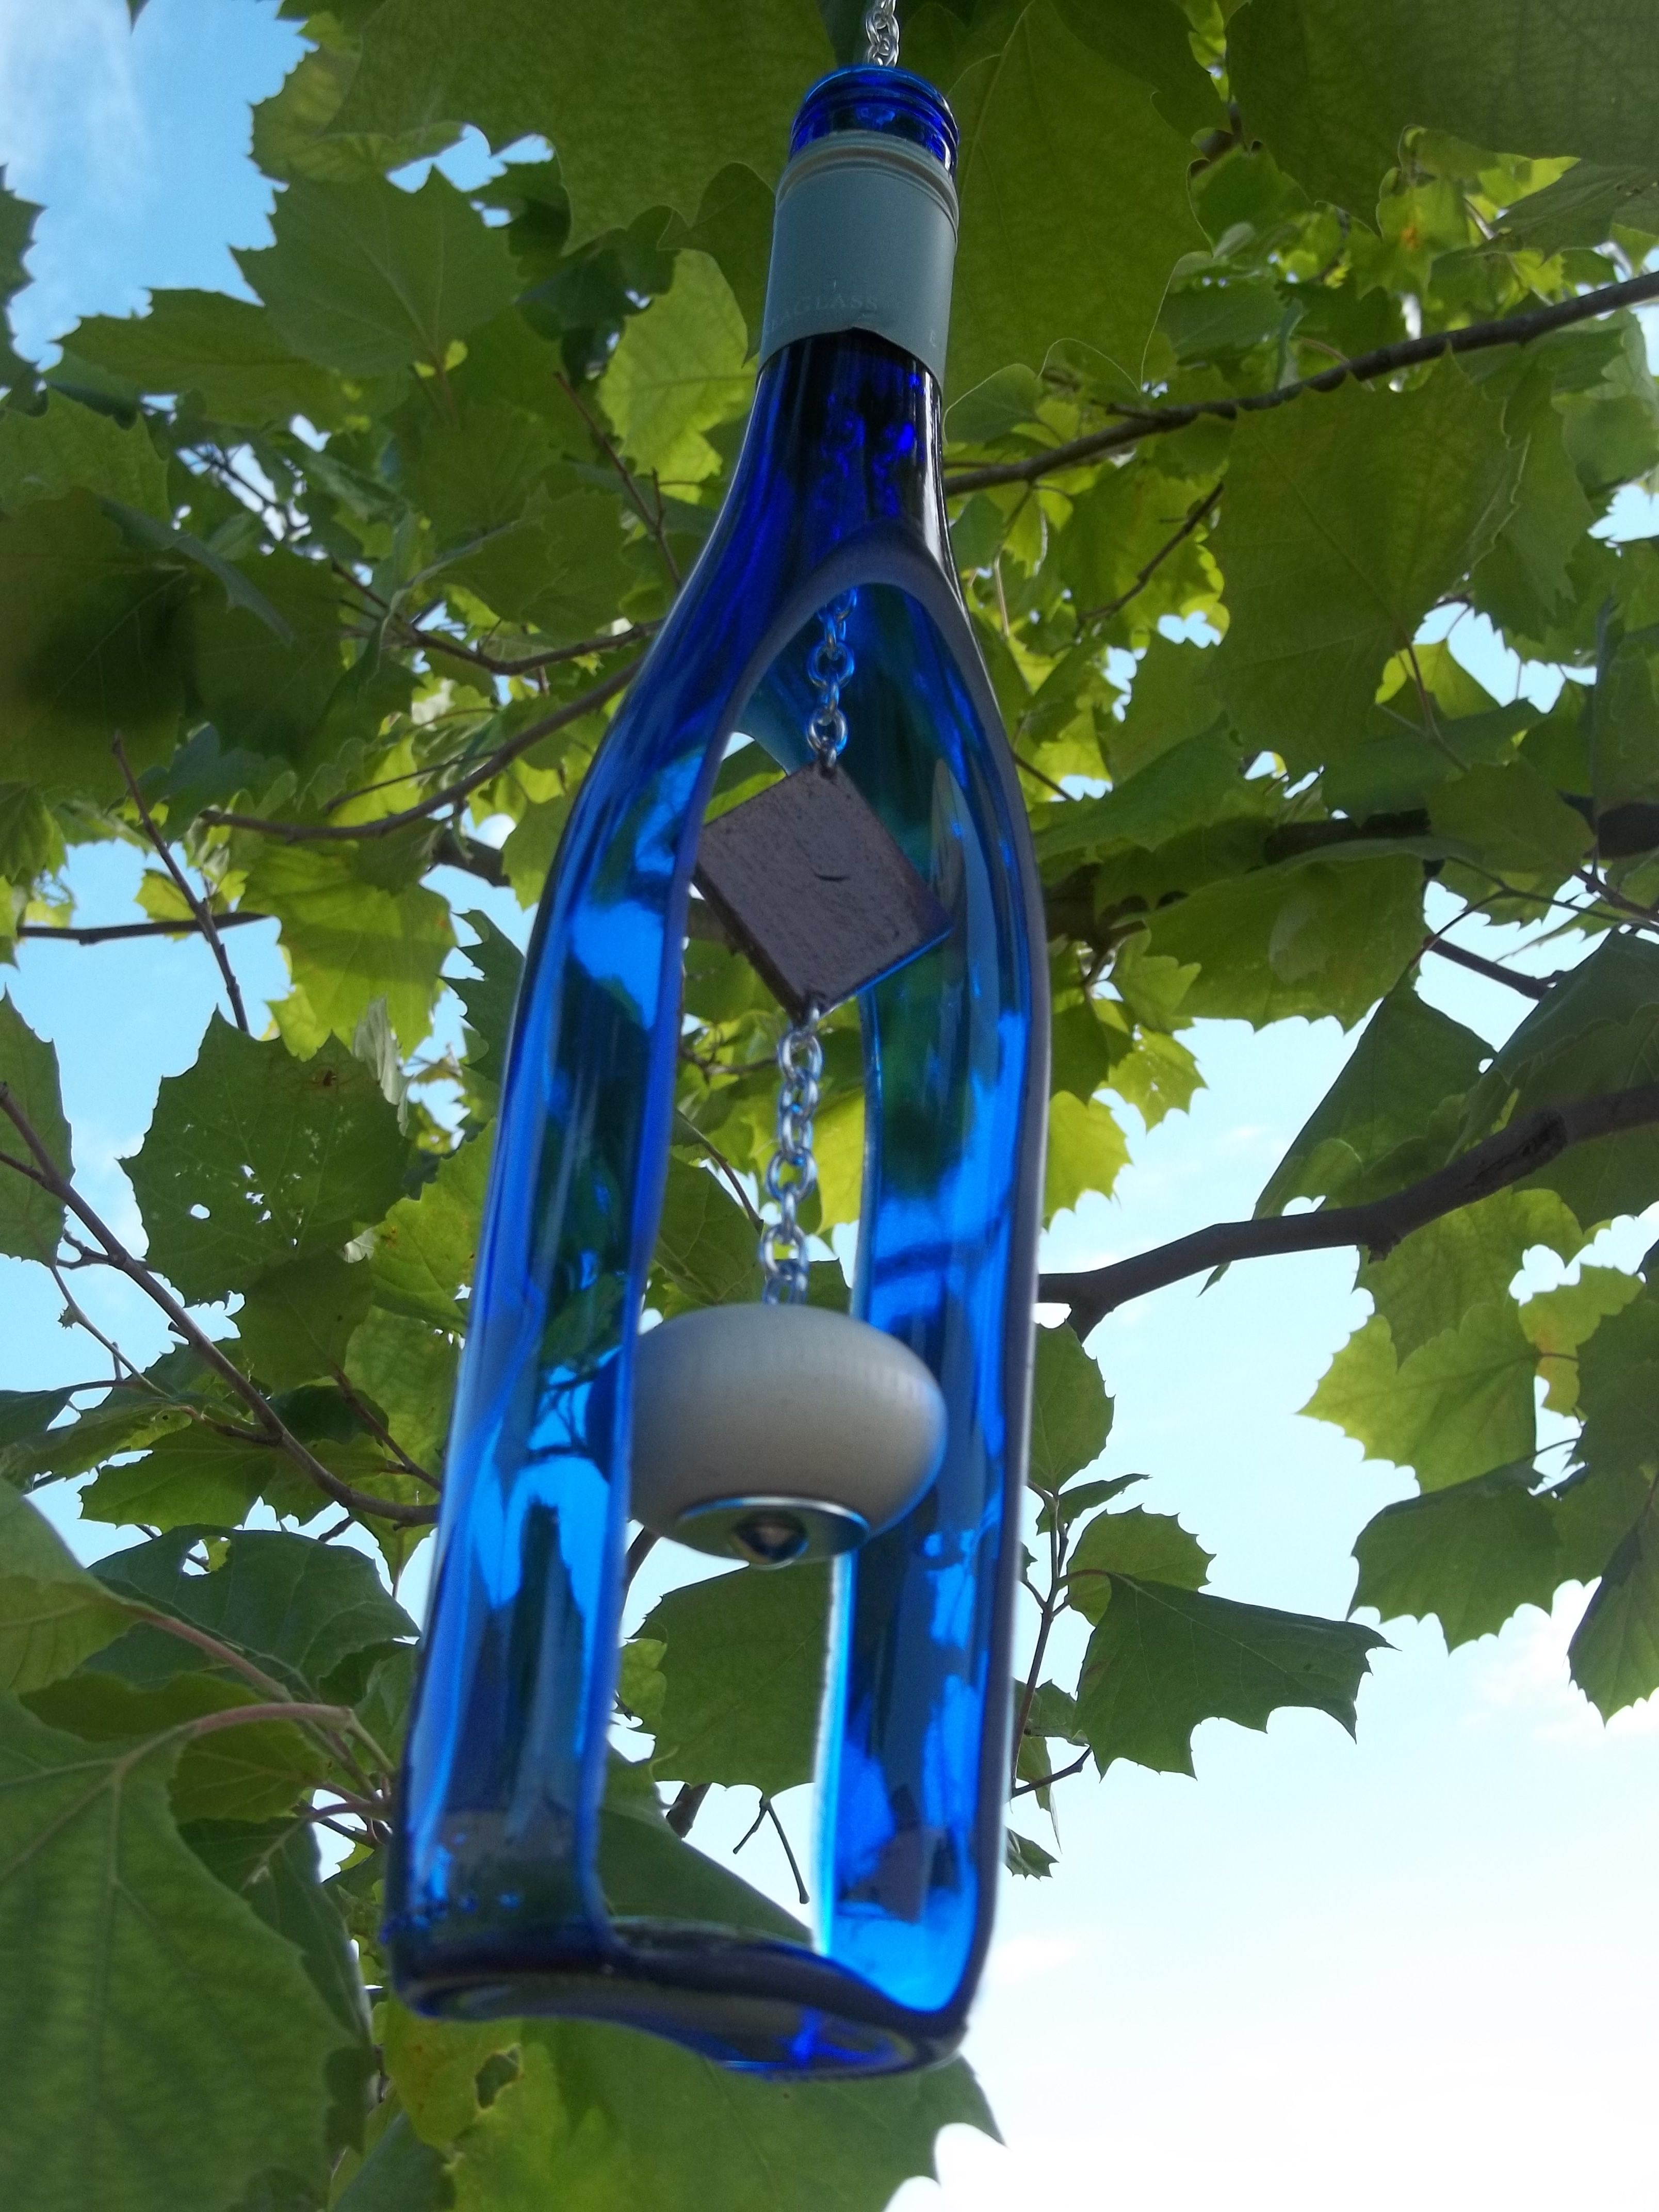 Recycled Wine Bottle Wind Chime | Recycled wine bottles, Wind chimes ...